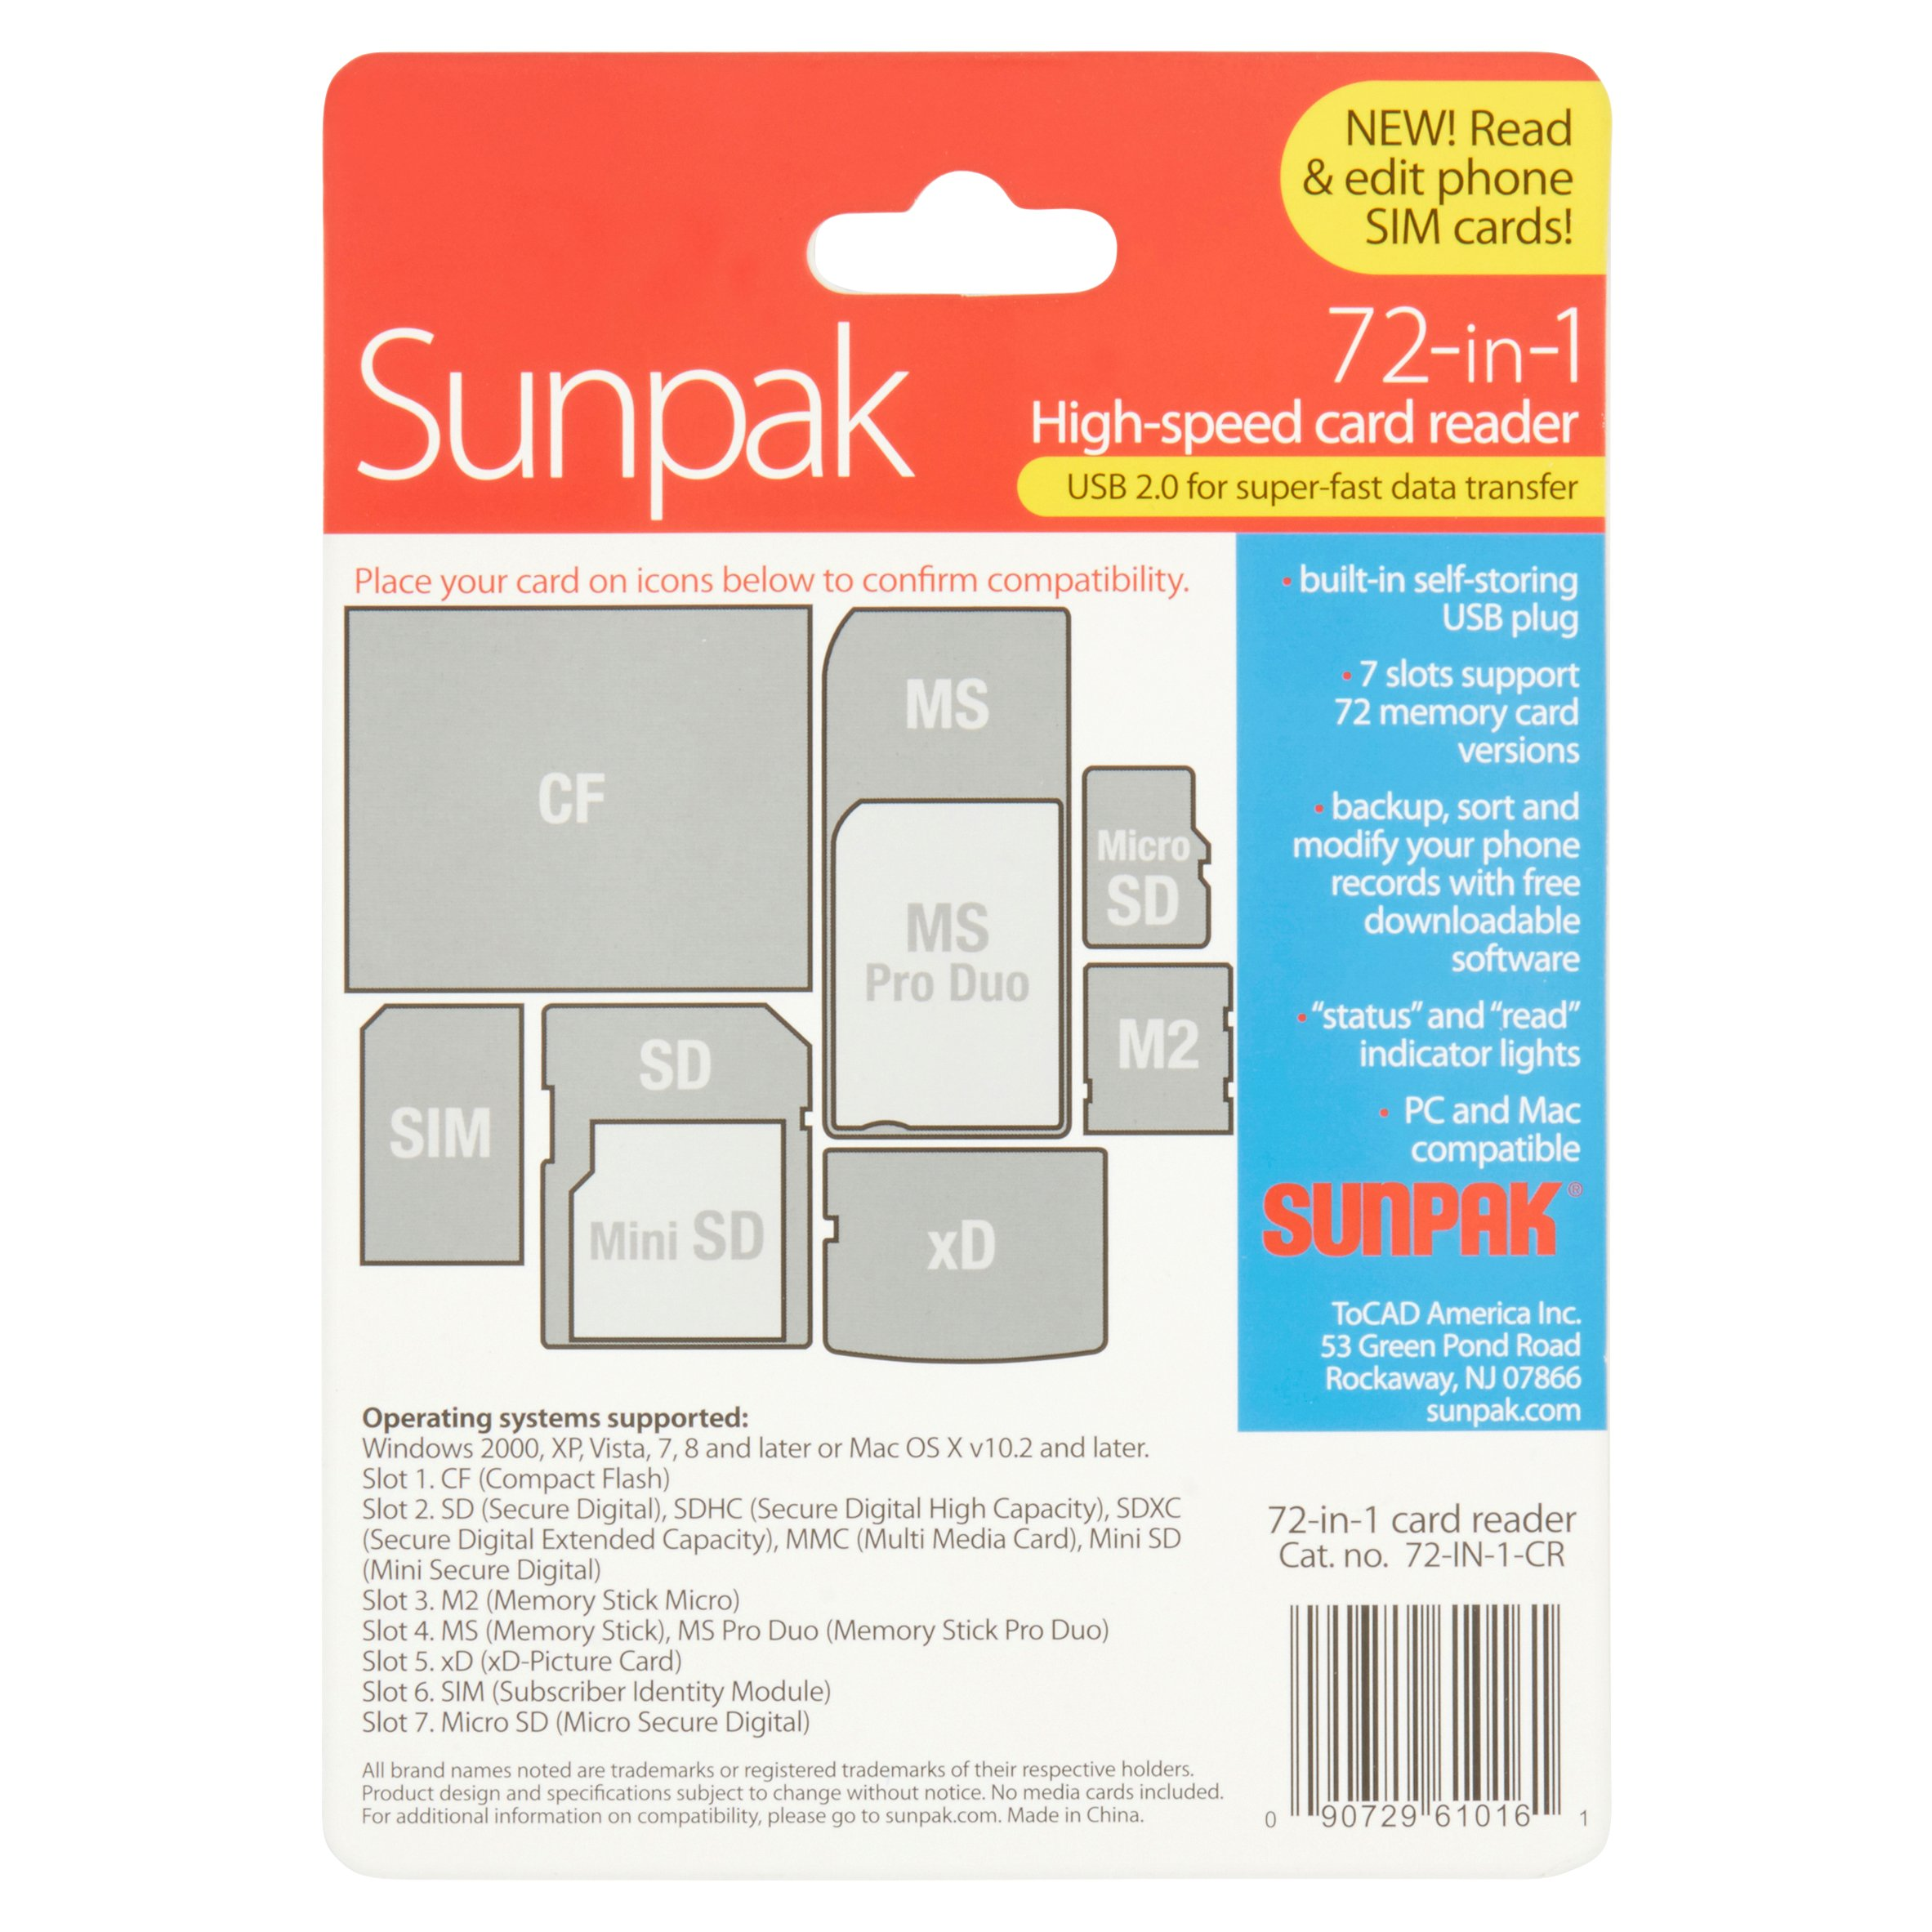 Sunpak 72-in-1 High-Speed Card Reader - Walmart com